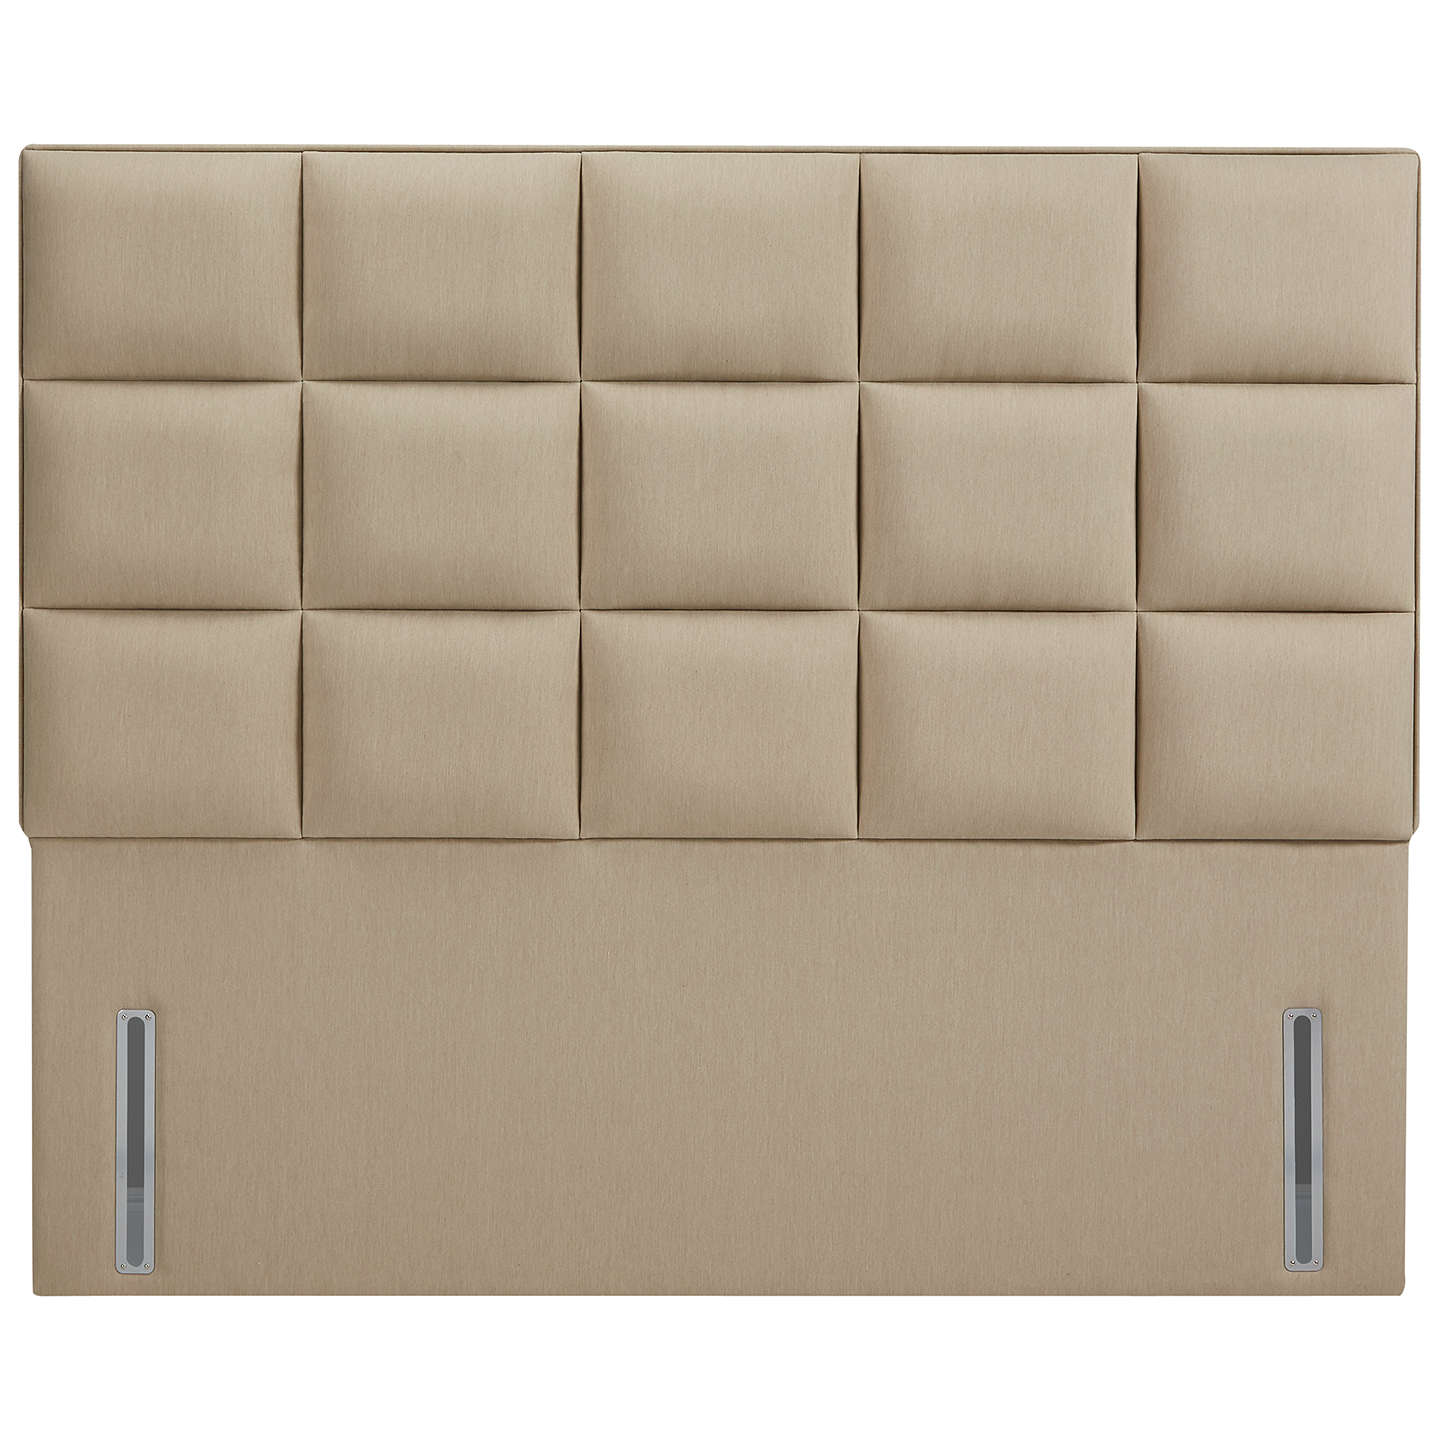 John Lewis The Ultimate Collection Gloucester Headboard, Pebble Canvas, Super King Size